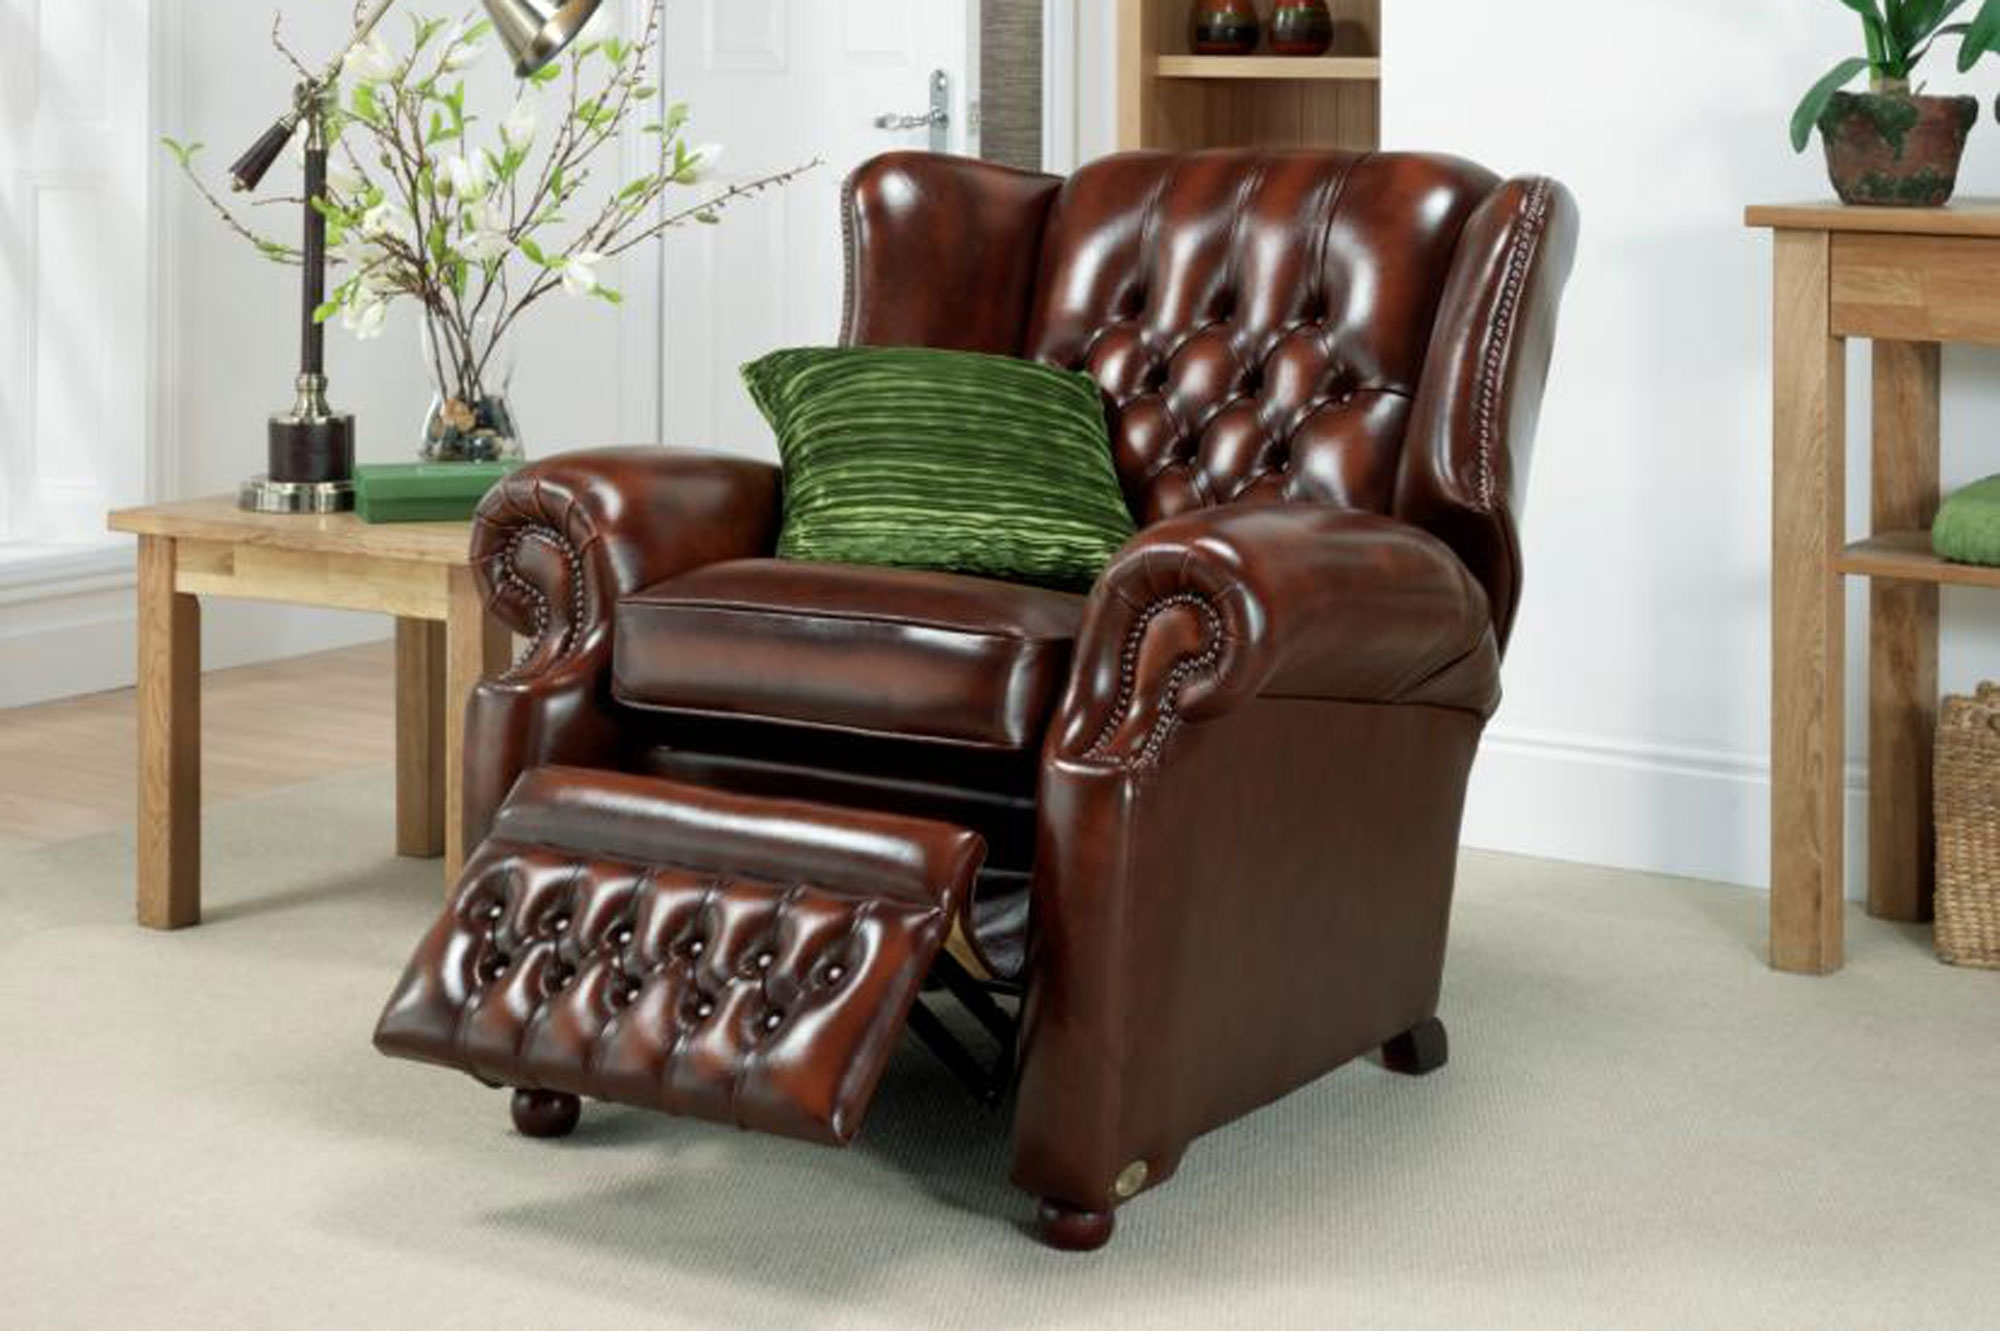 Recliners Springvale Leather Furniture With Regard To Chesterfield Recliners (View 6 of 15)